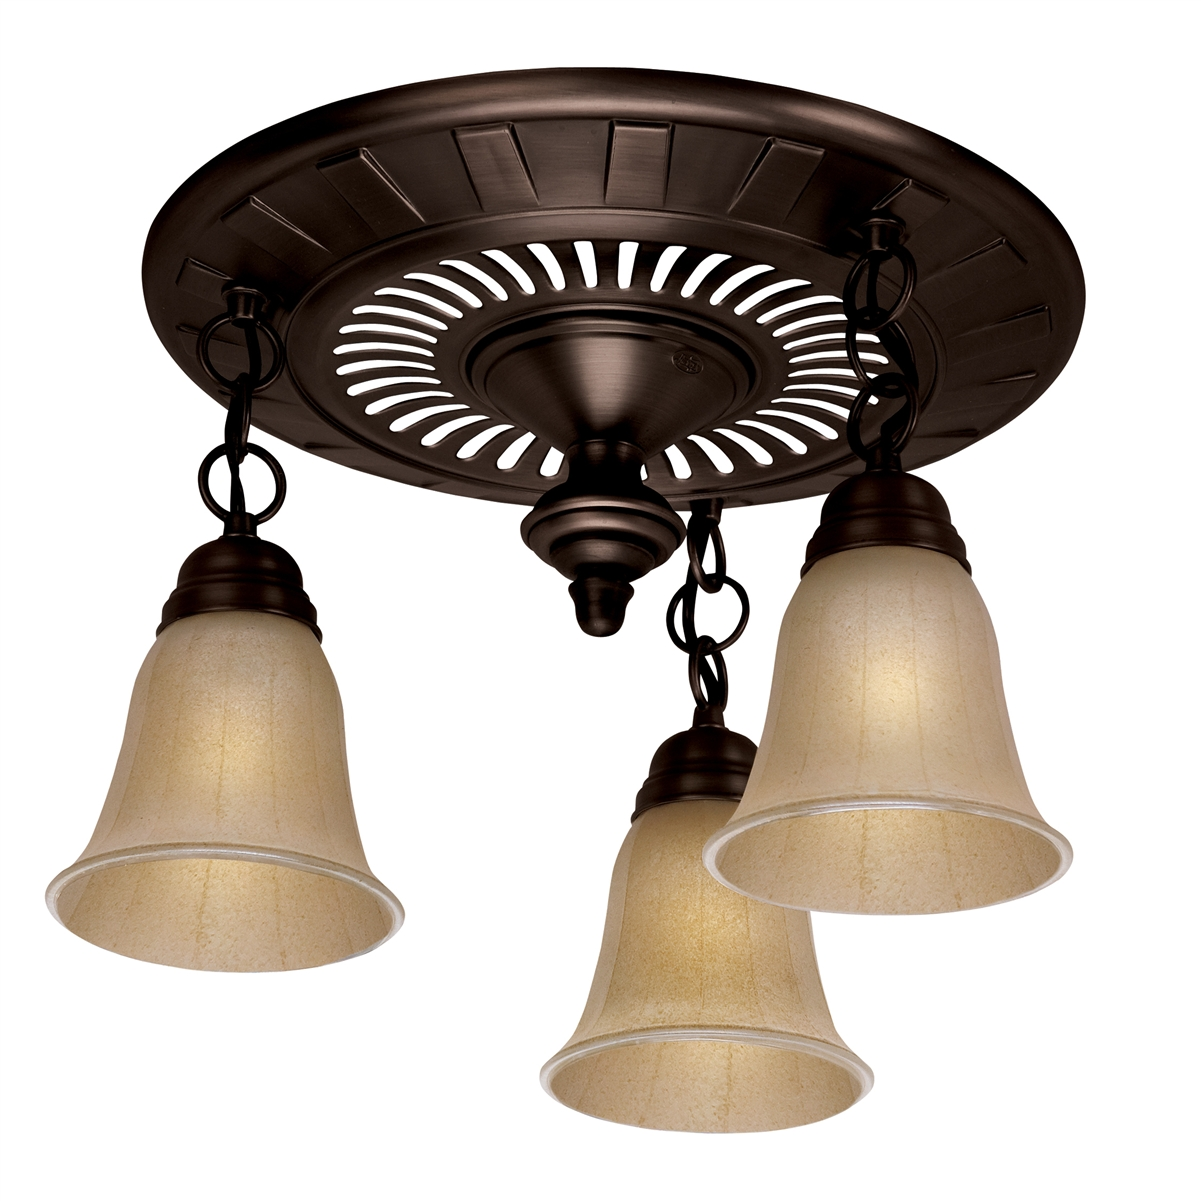 Garden district 3 light bathroom fan oil rubbed bronze 80707 aloadofball